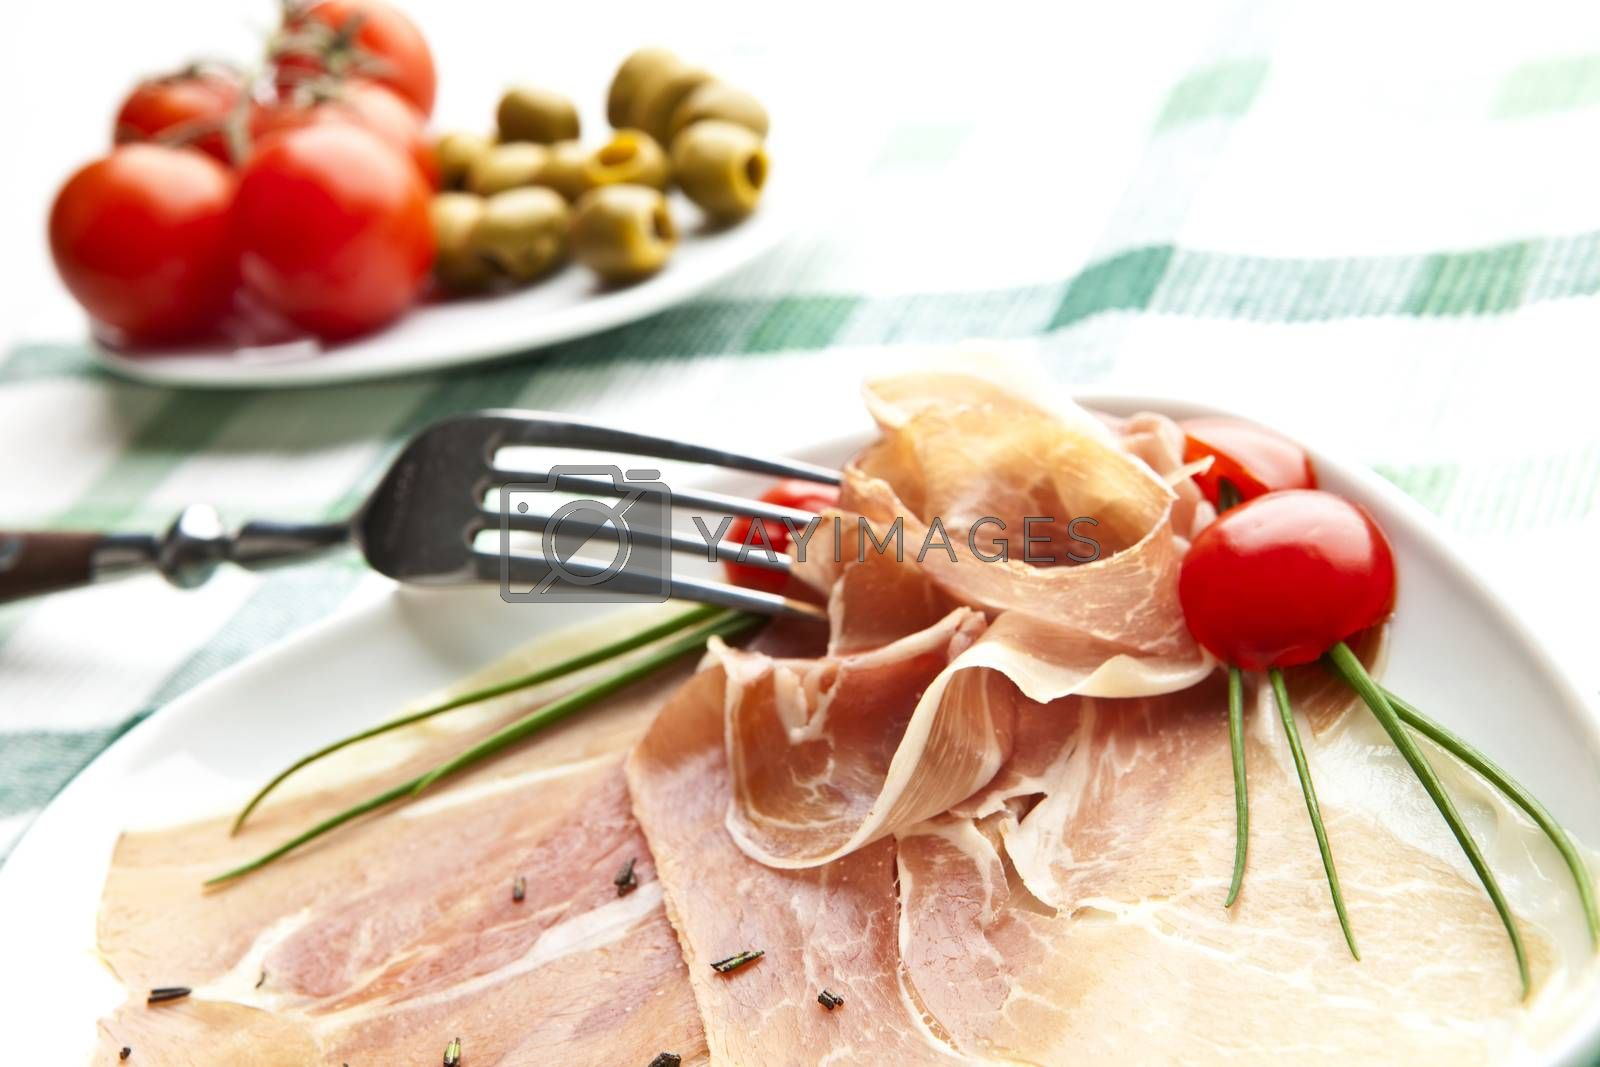 delicious Prosciutto plate with olives, tomatos.